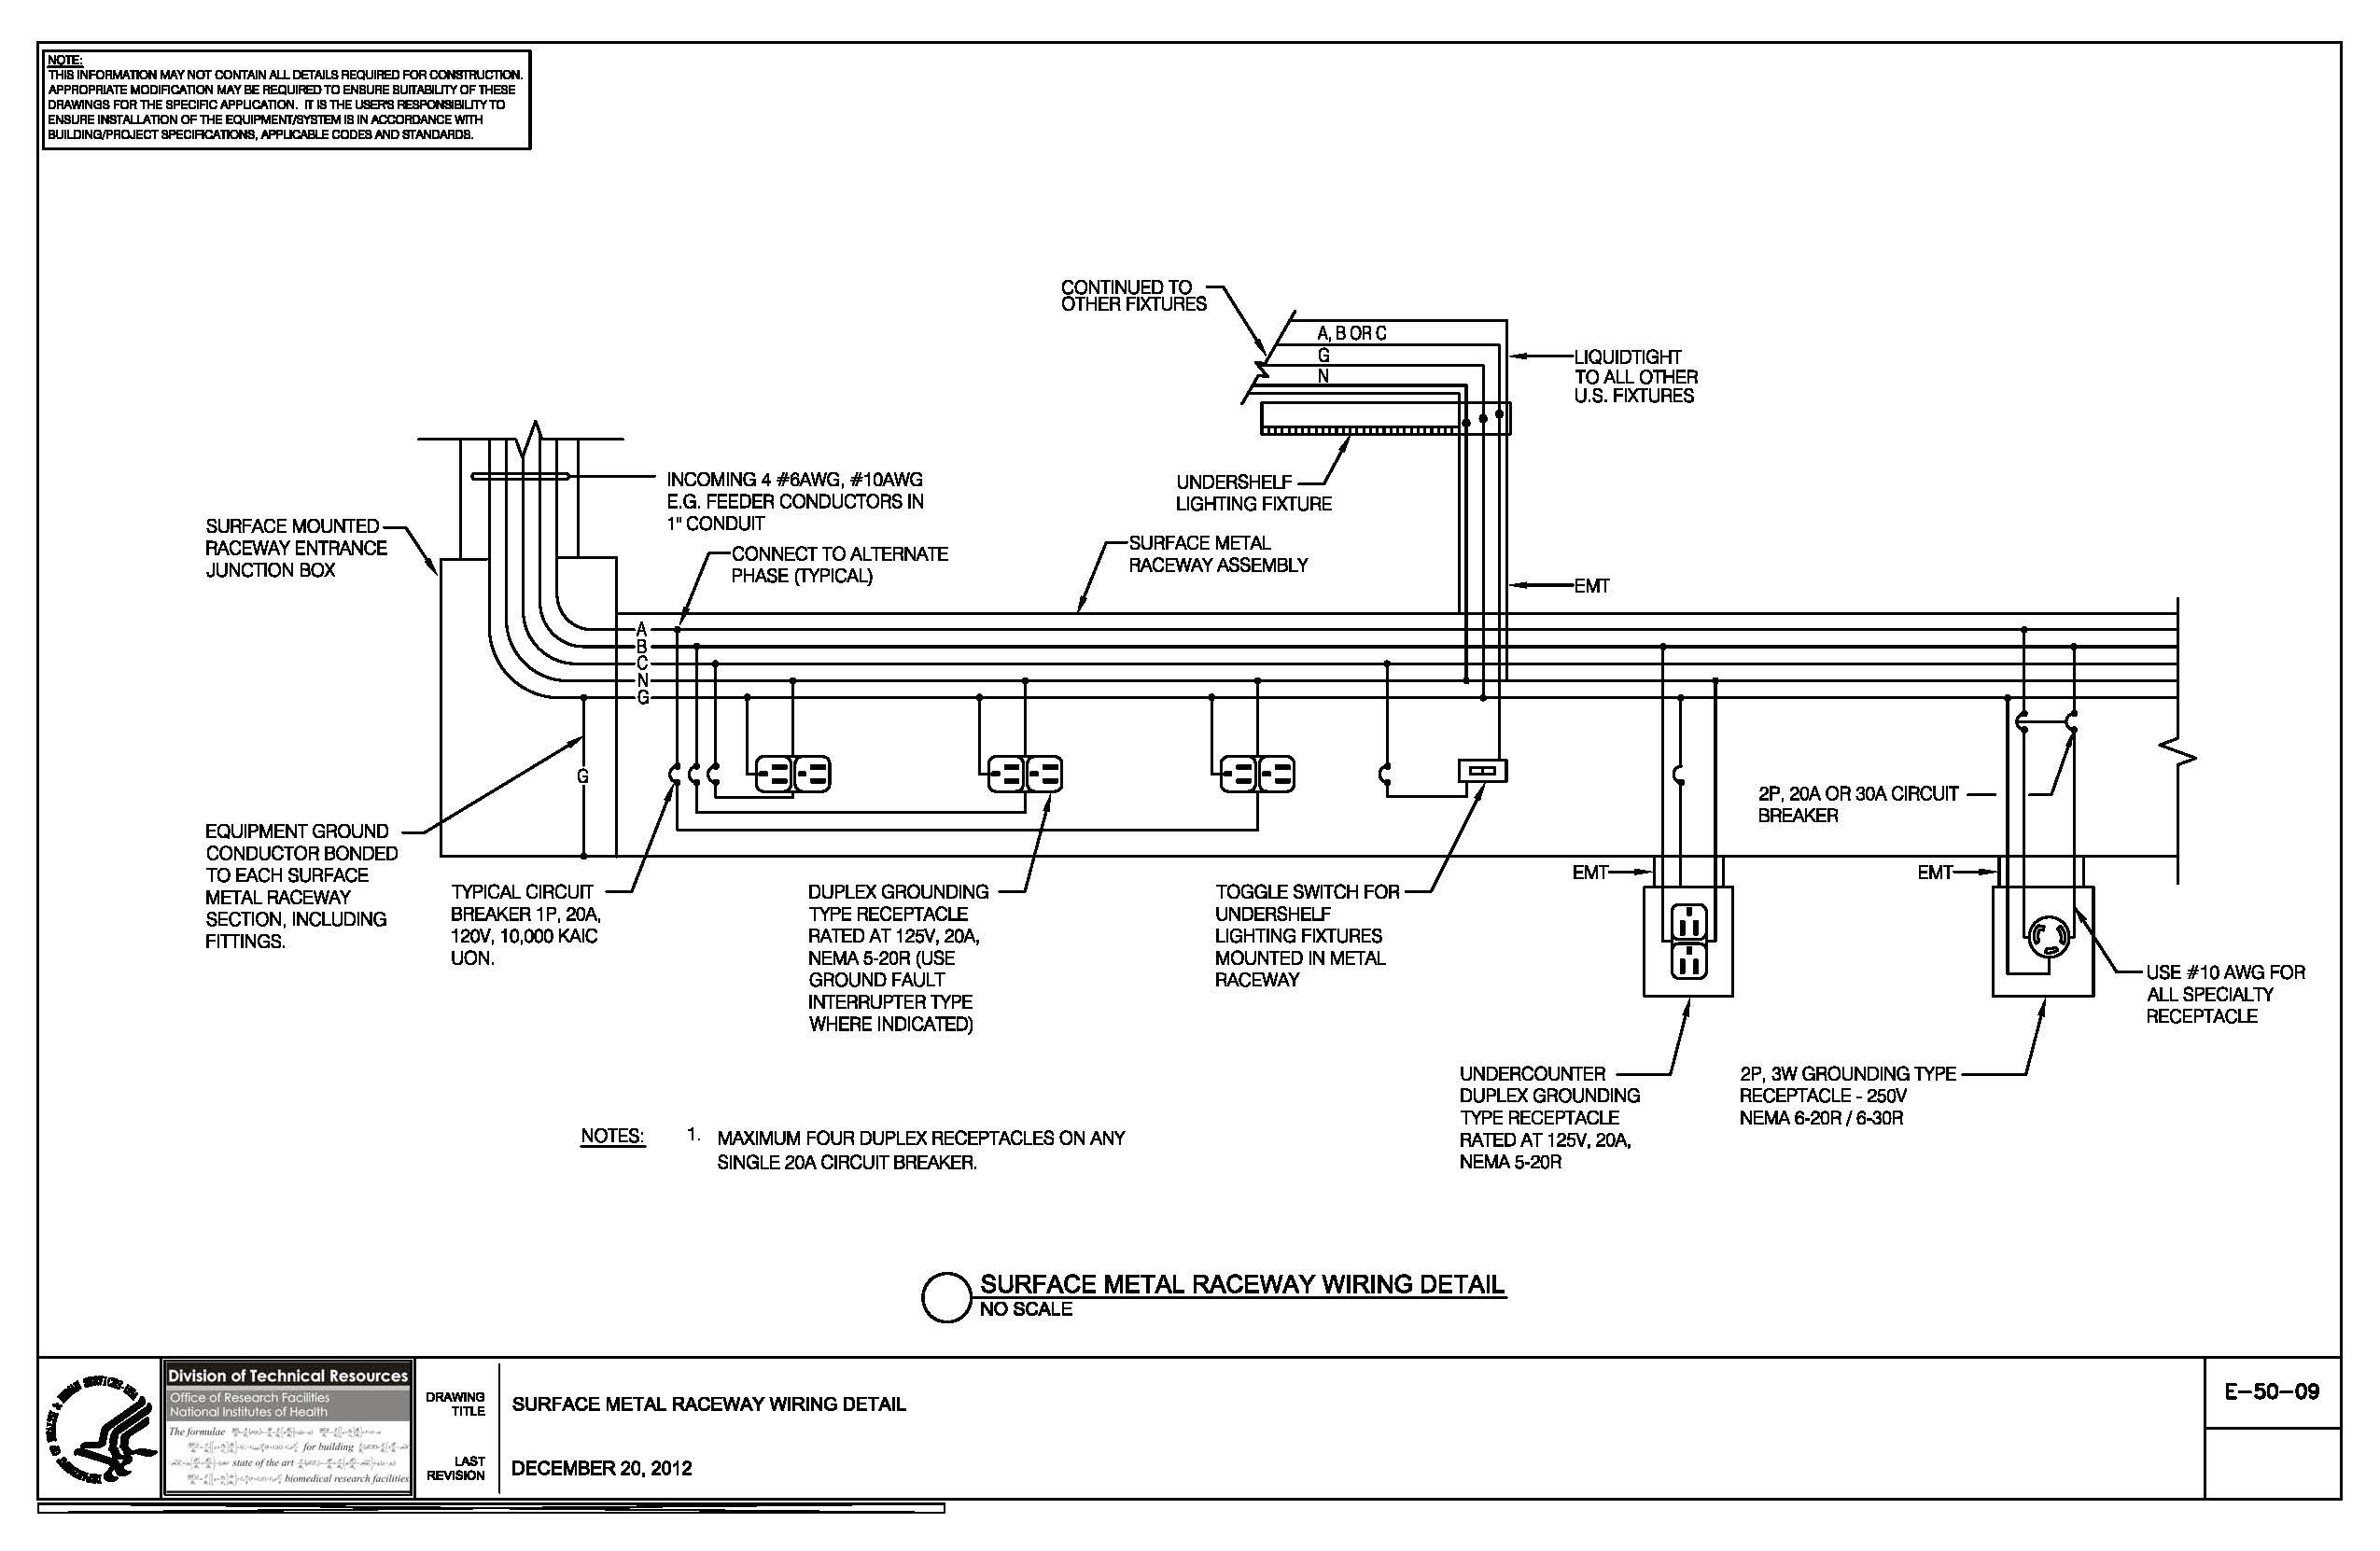 Deta Electrical Wiring Diagram Home Wiring Details Wiring Diagram